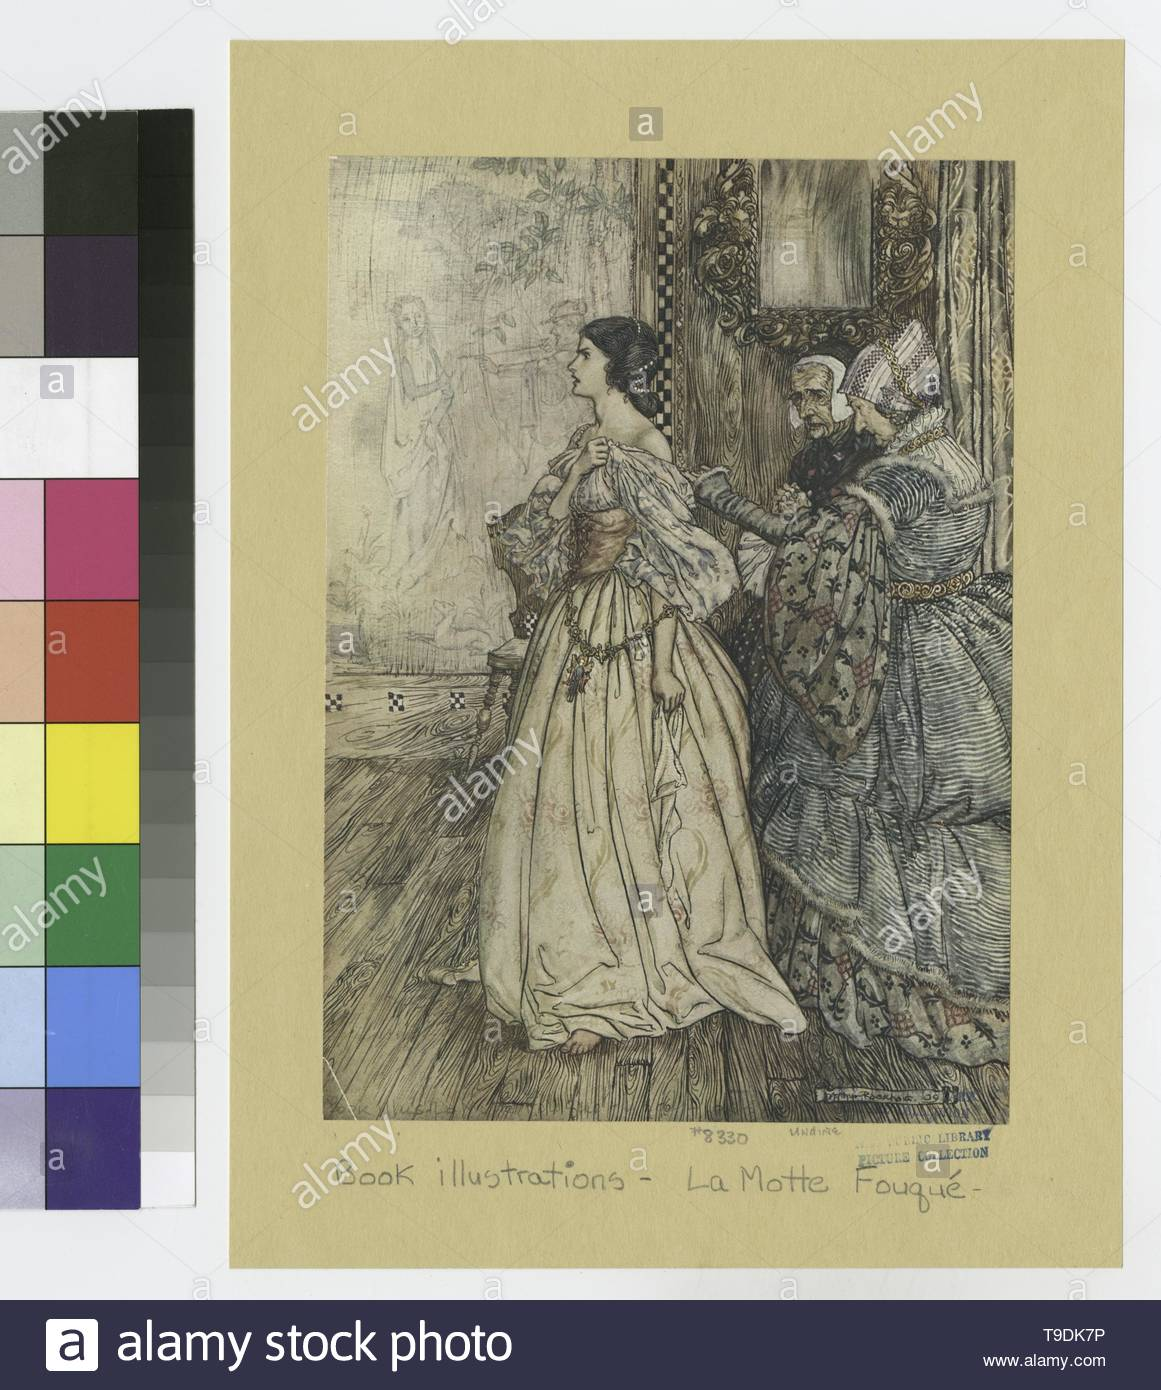 Rackham,Arthur(1867-1939)-&quot,& x27,She hath a mark, like a violet, between her shoulders, and another like it on the instep of her left foot & x27,&quot, - Stock Image